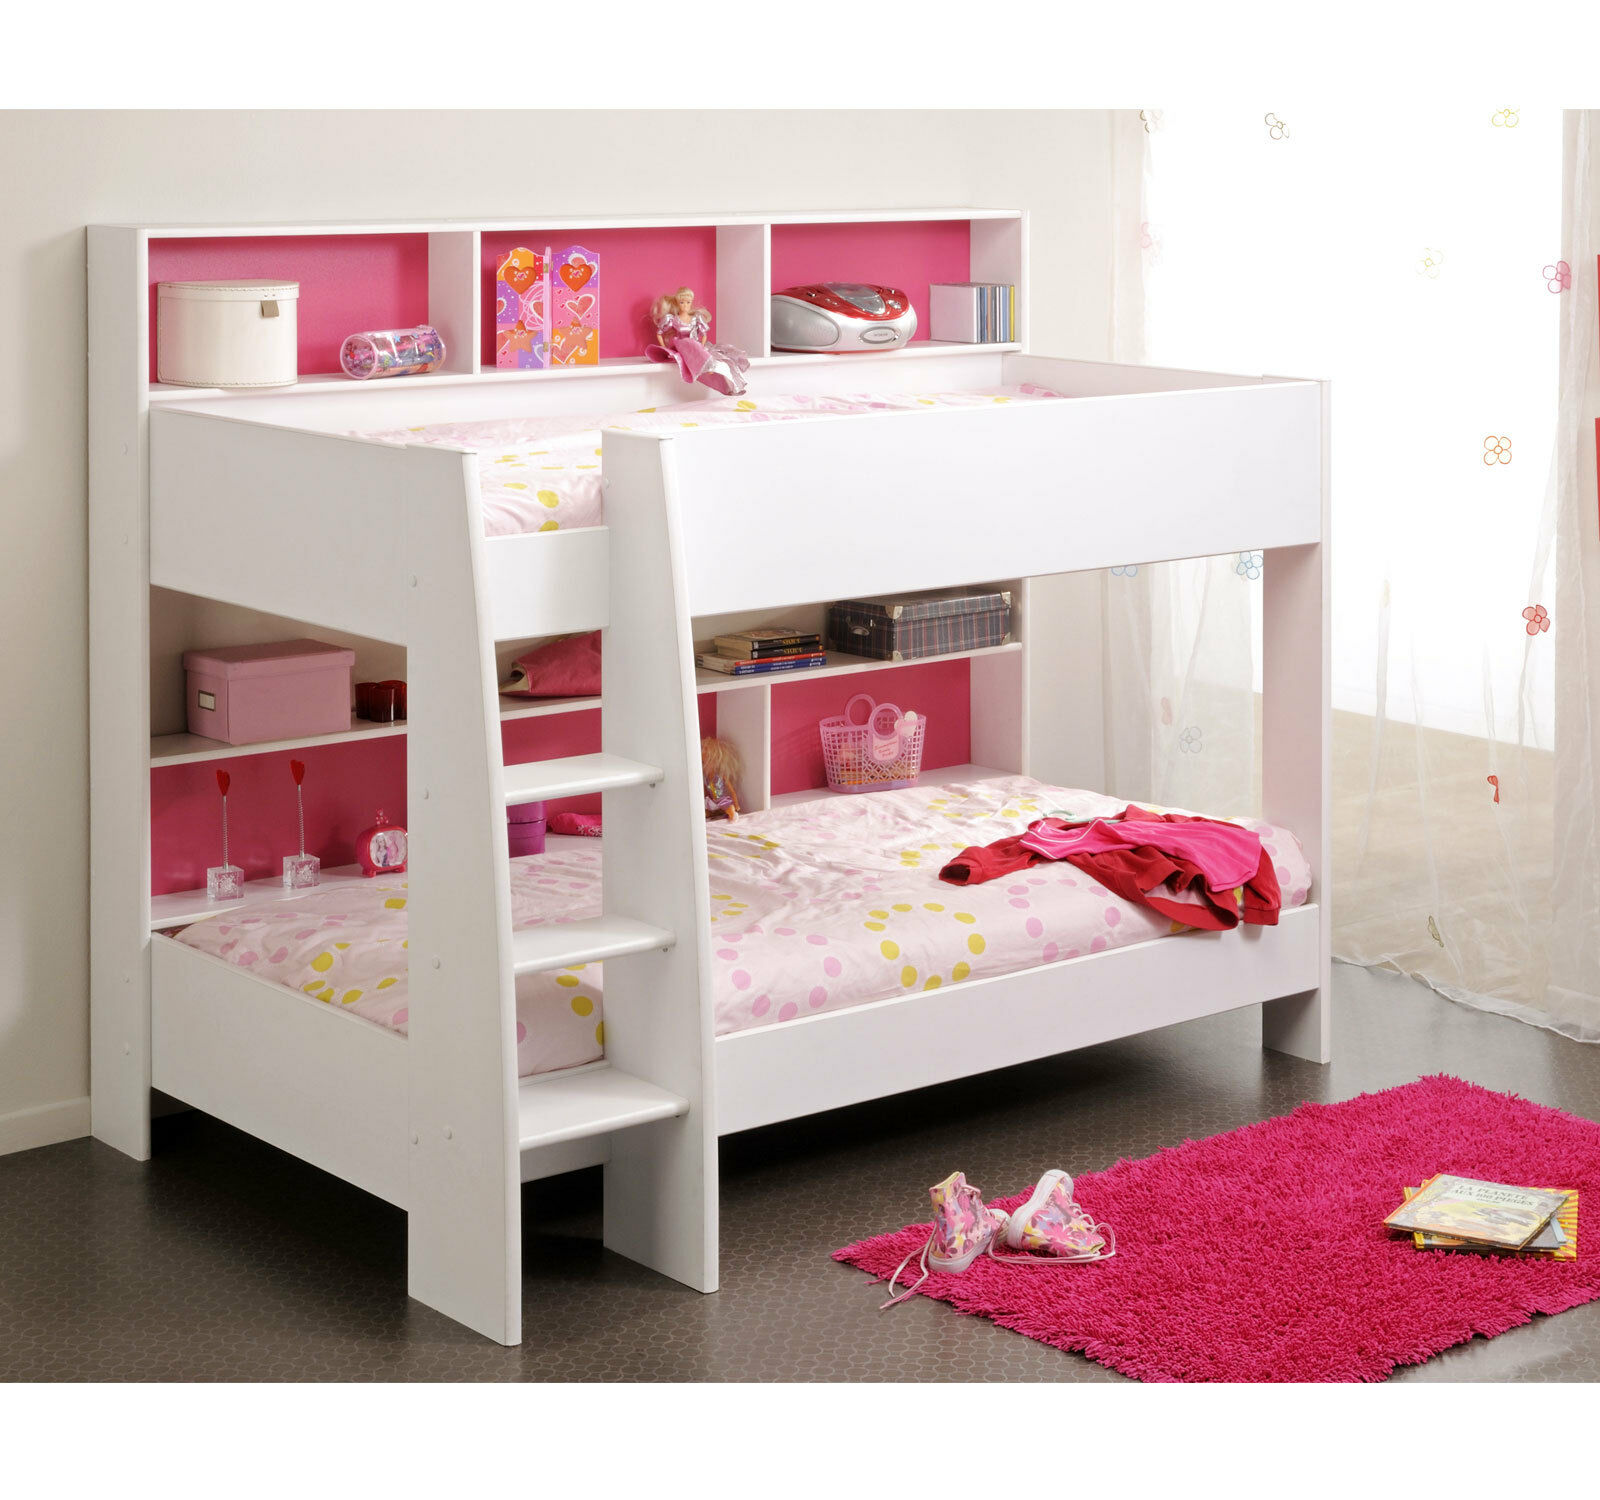 m dchen kinderbett 90x200 kinder etagenbett hochbett wei. Black Bedroom Furniture Sets. Home Design Ideas